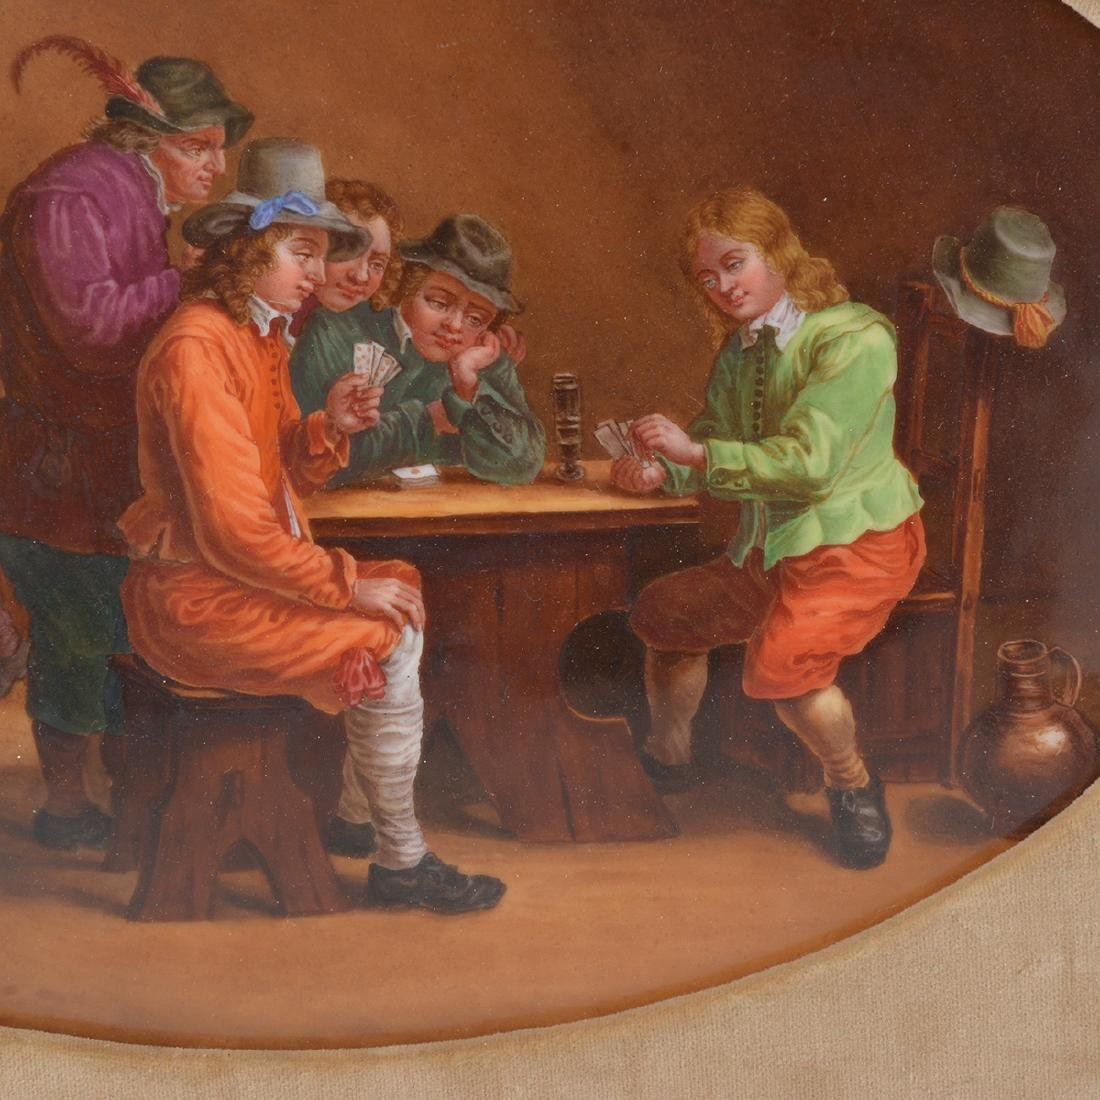 French Porcelain Plaque of Tavern Scene - 4